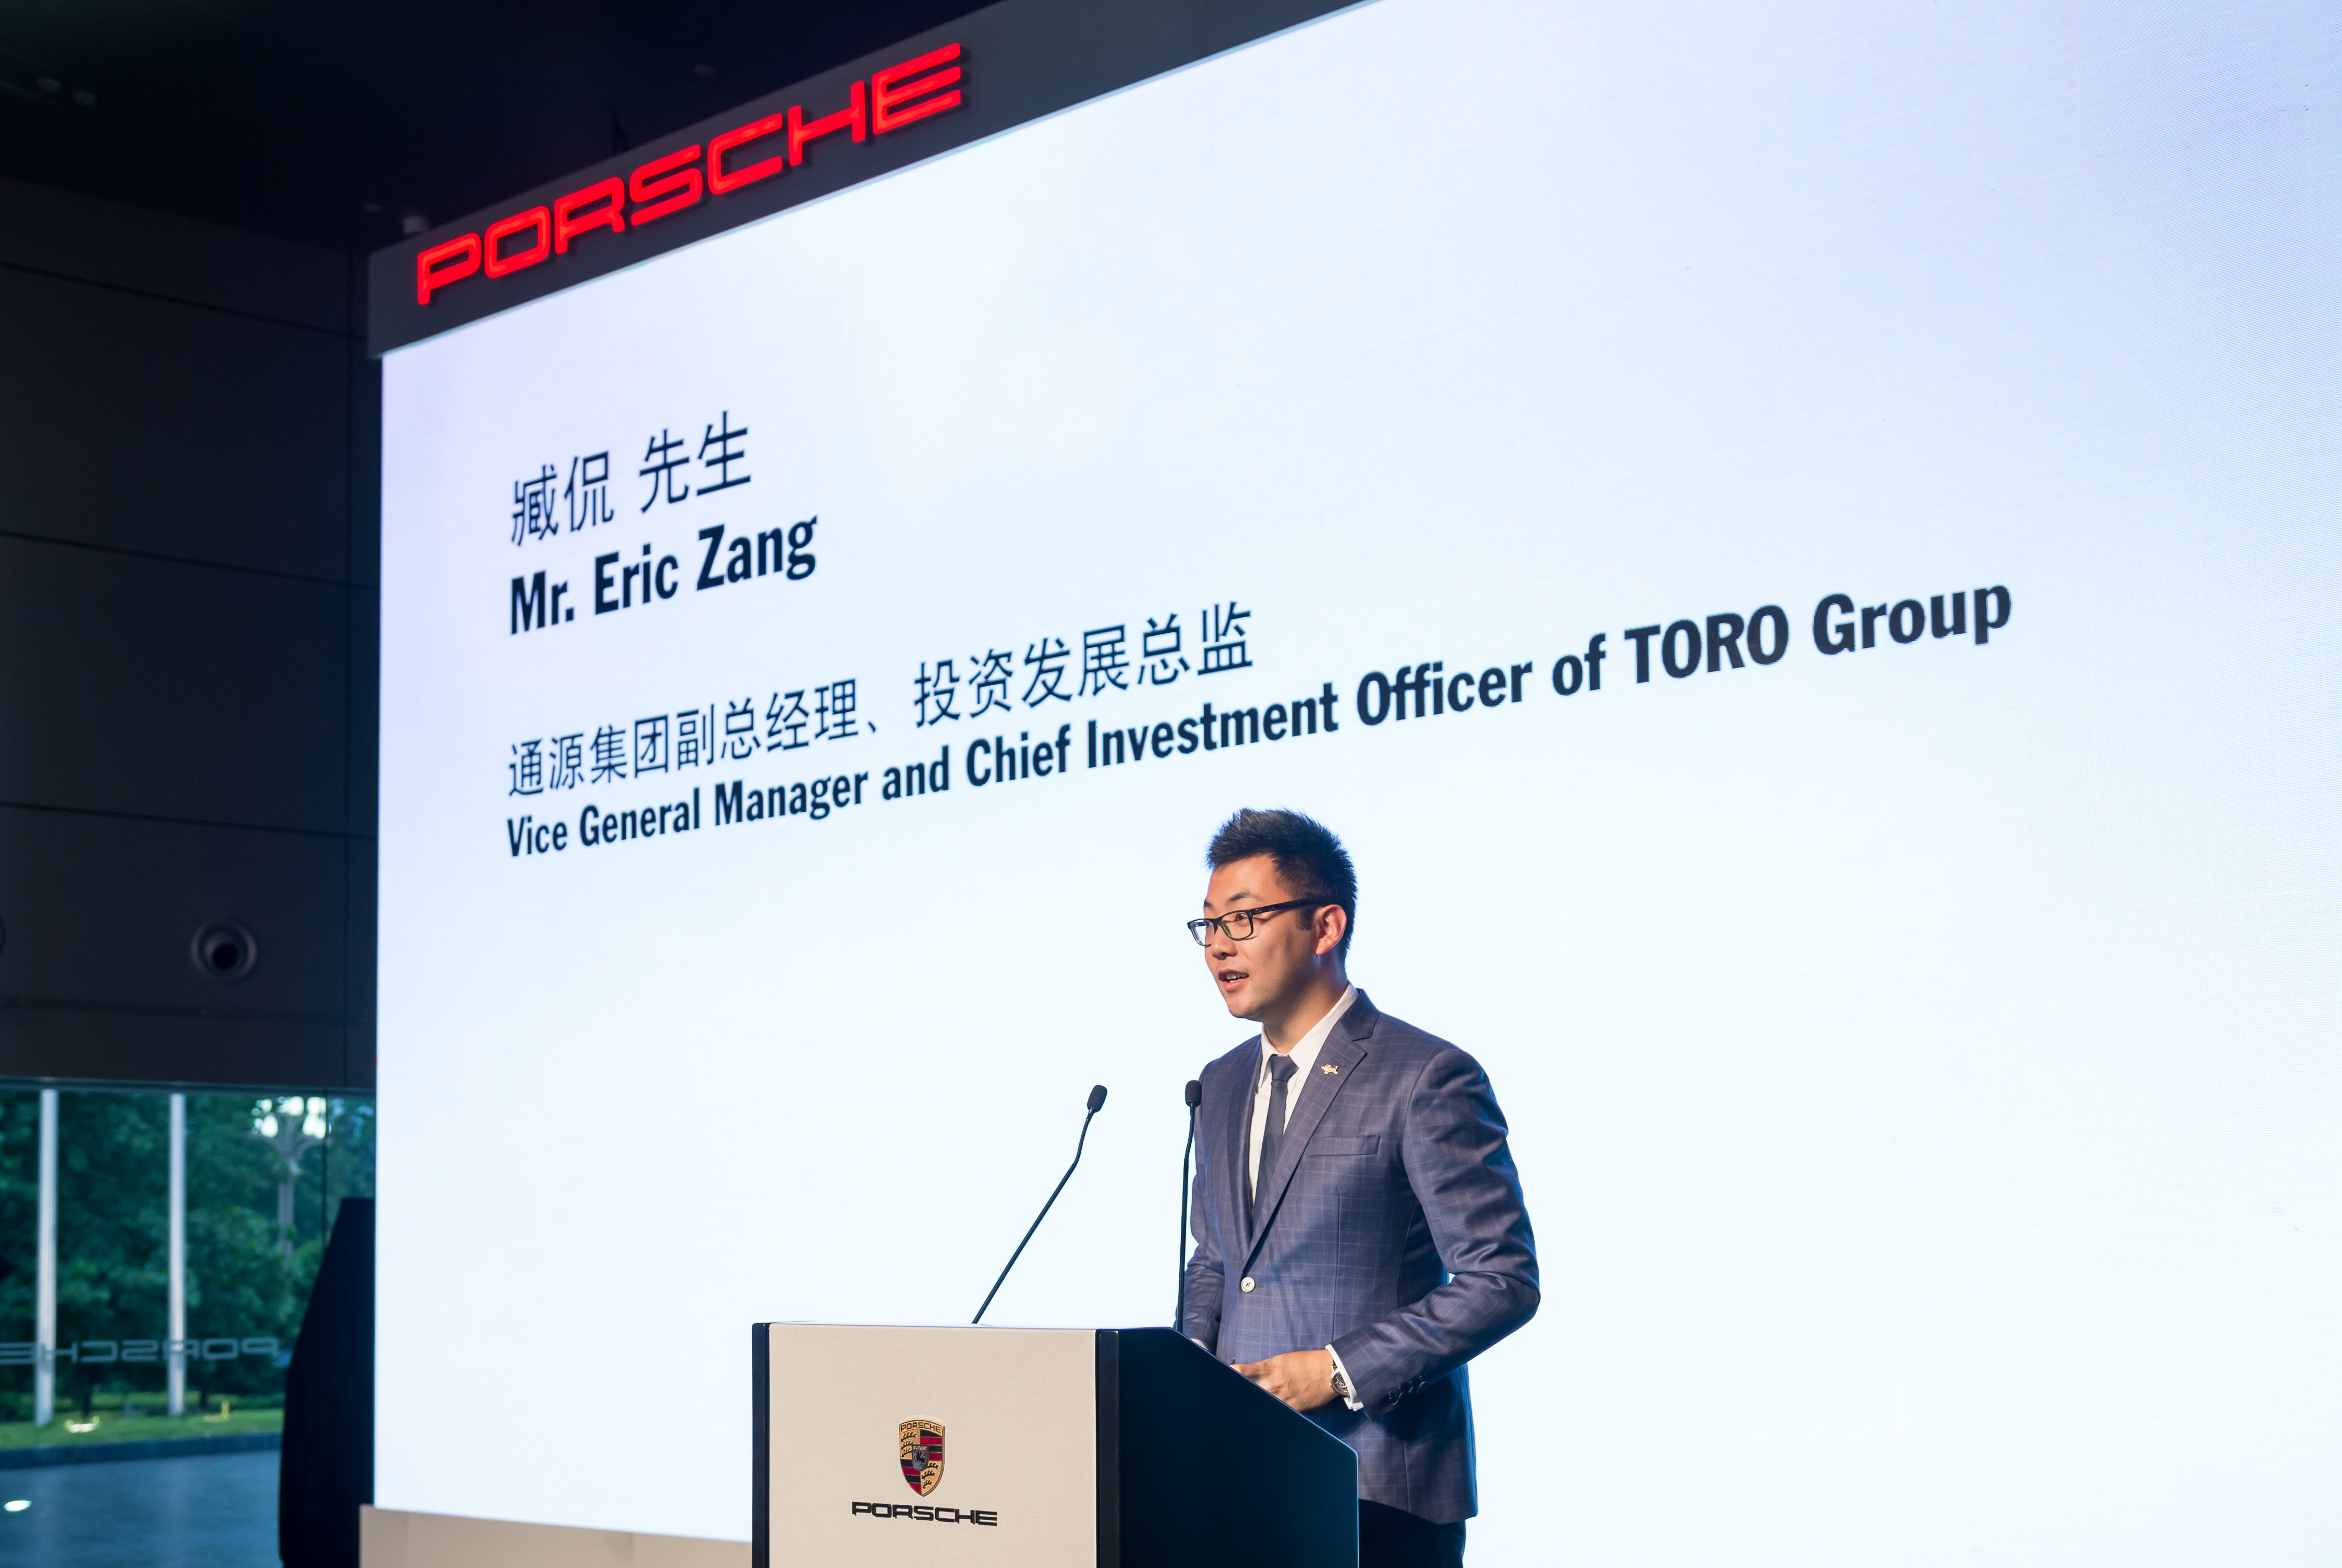 Speech delivered by Mr  Eric Zang, Vice General Manager and